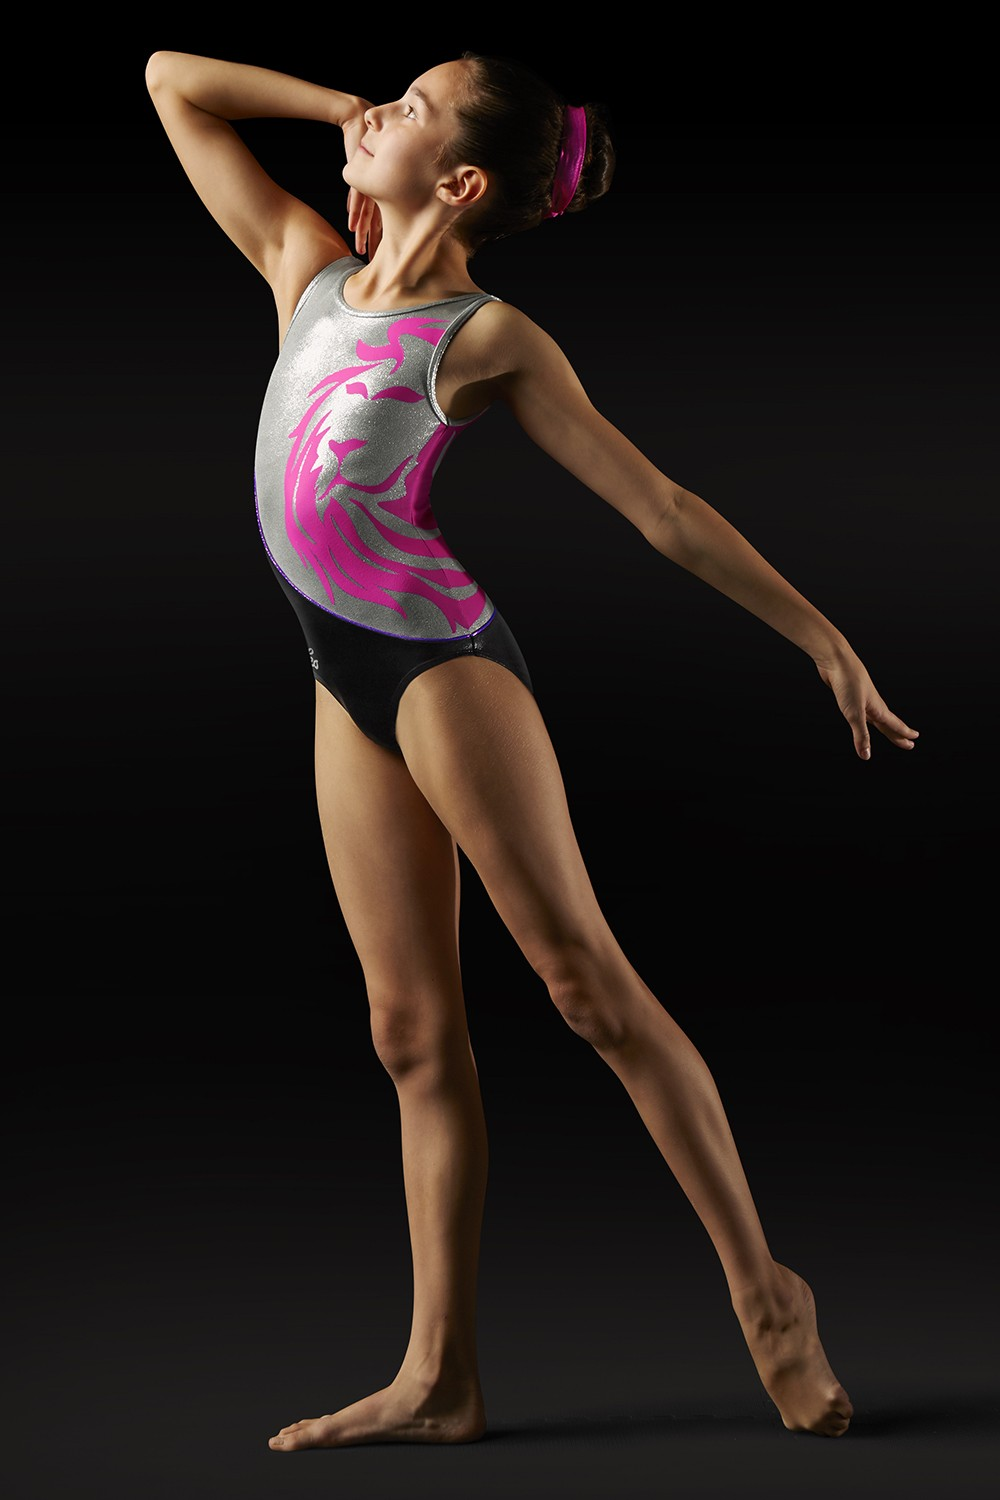 Leo Lion Tank Women's Gymnastics Leotards